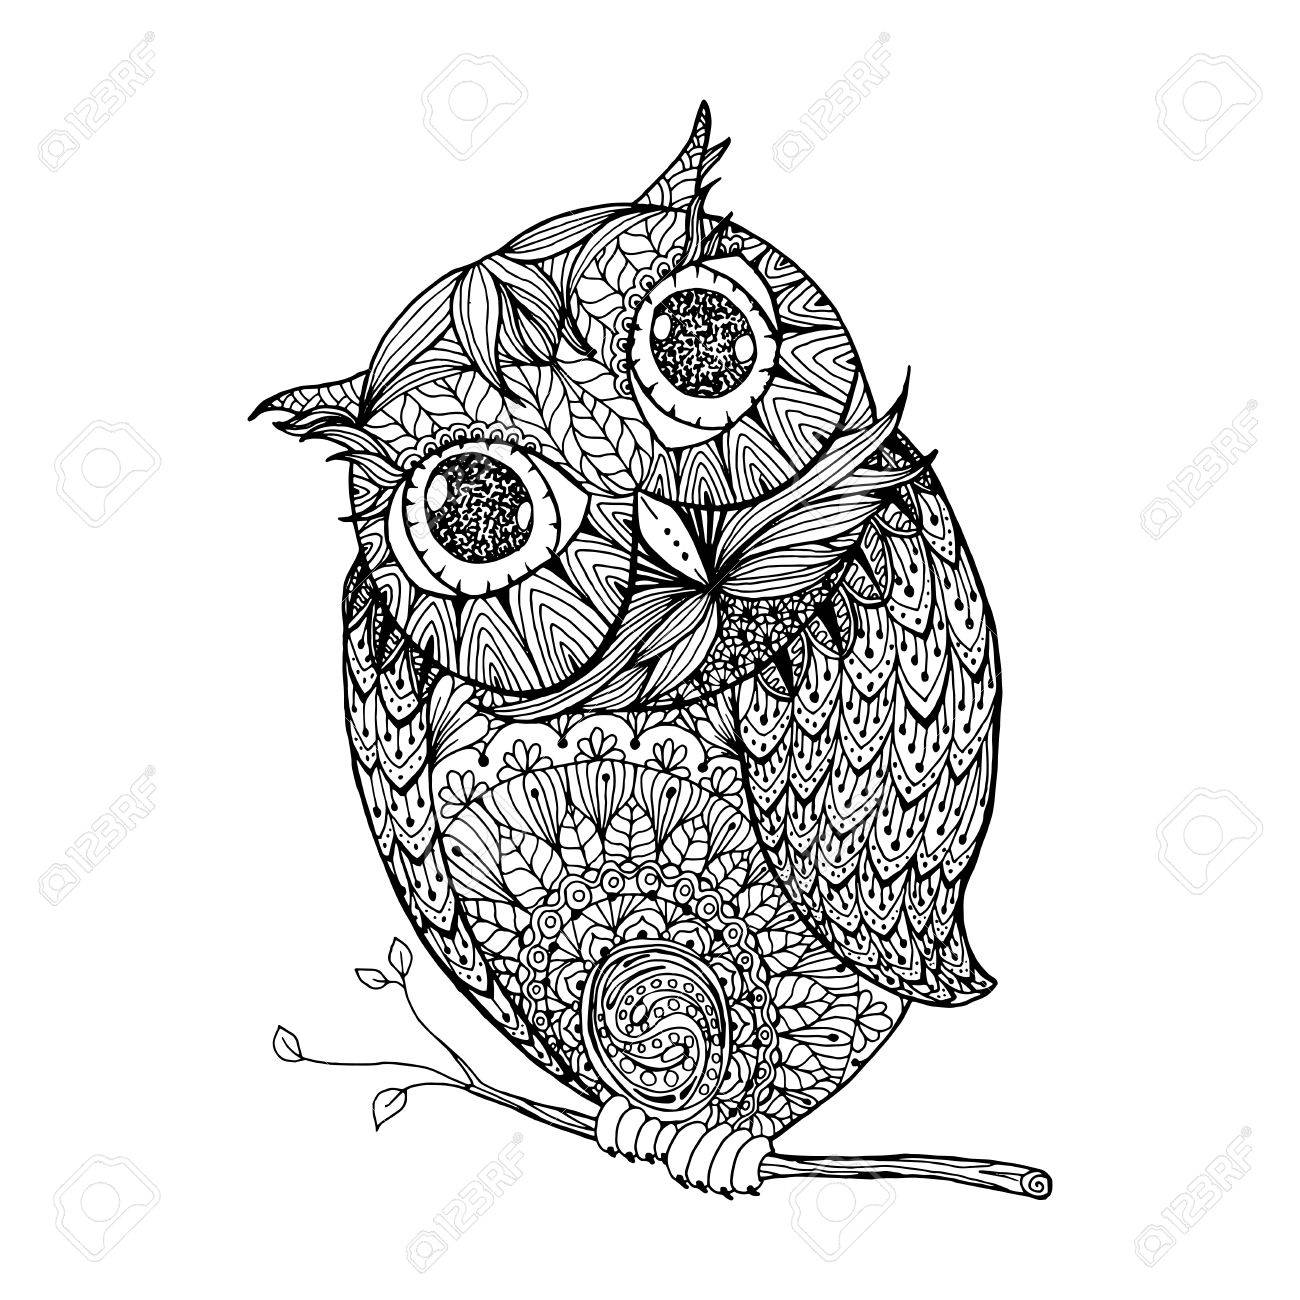 Zentangle Style Owl Isolated Illustration With Ornanets Fill